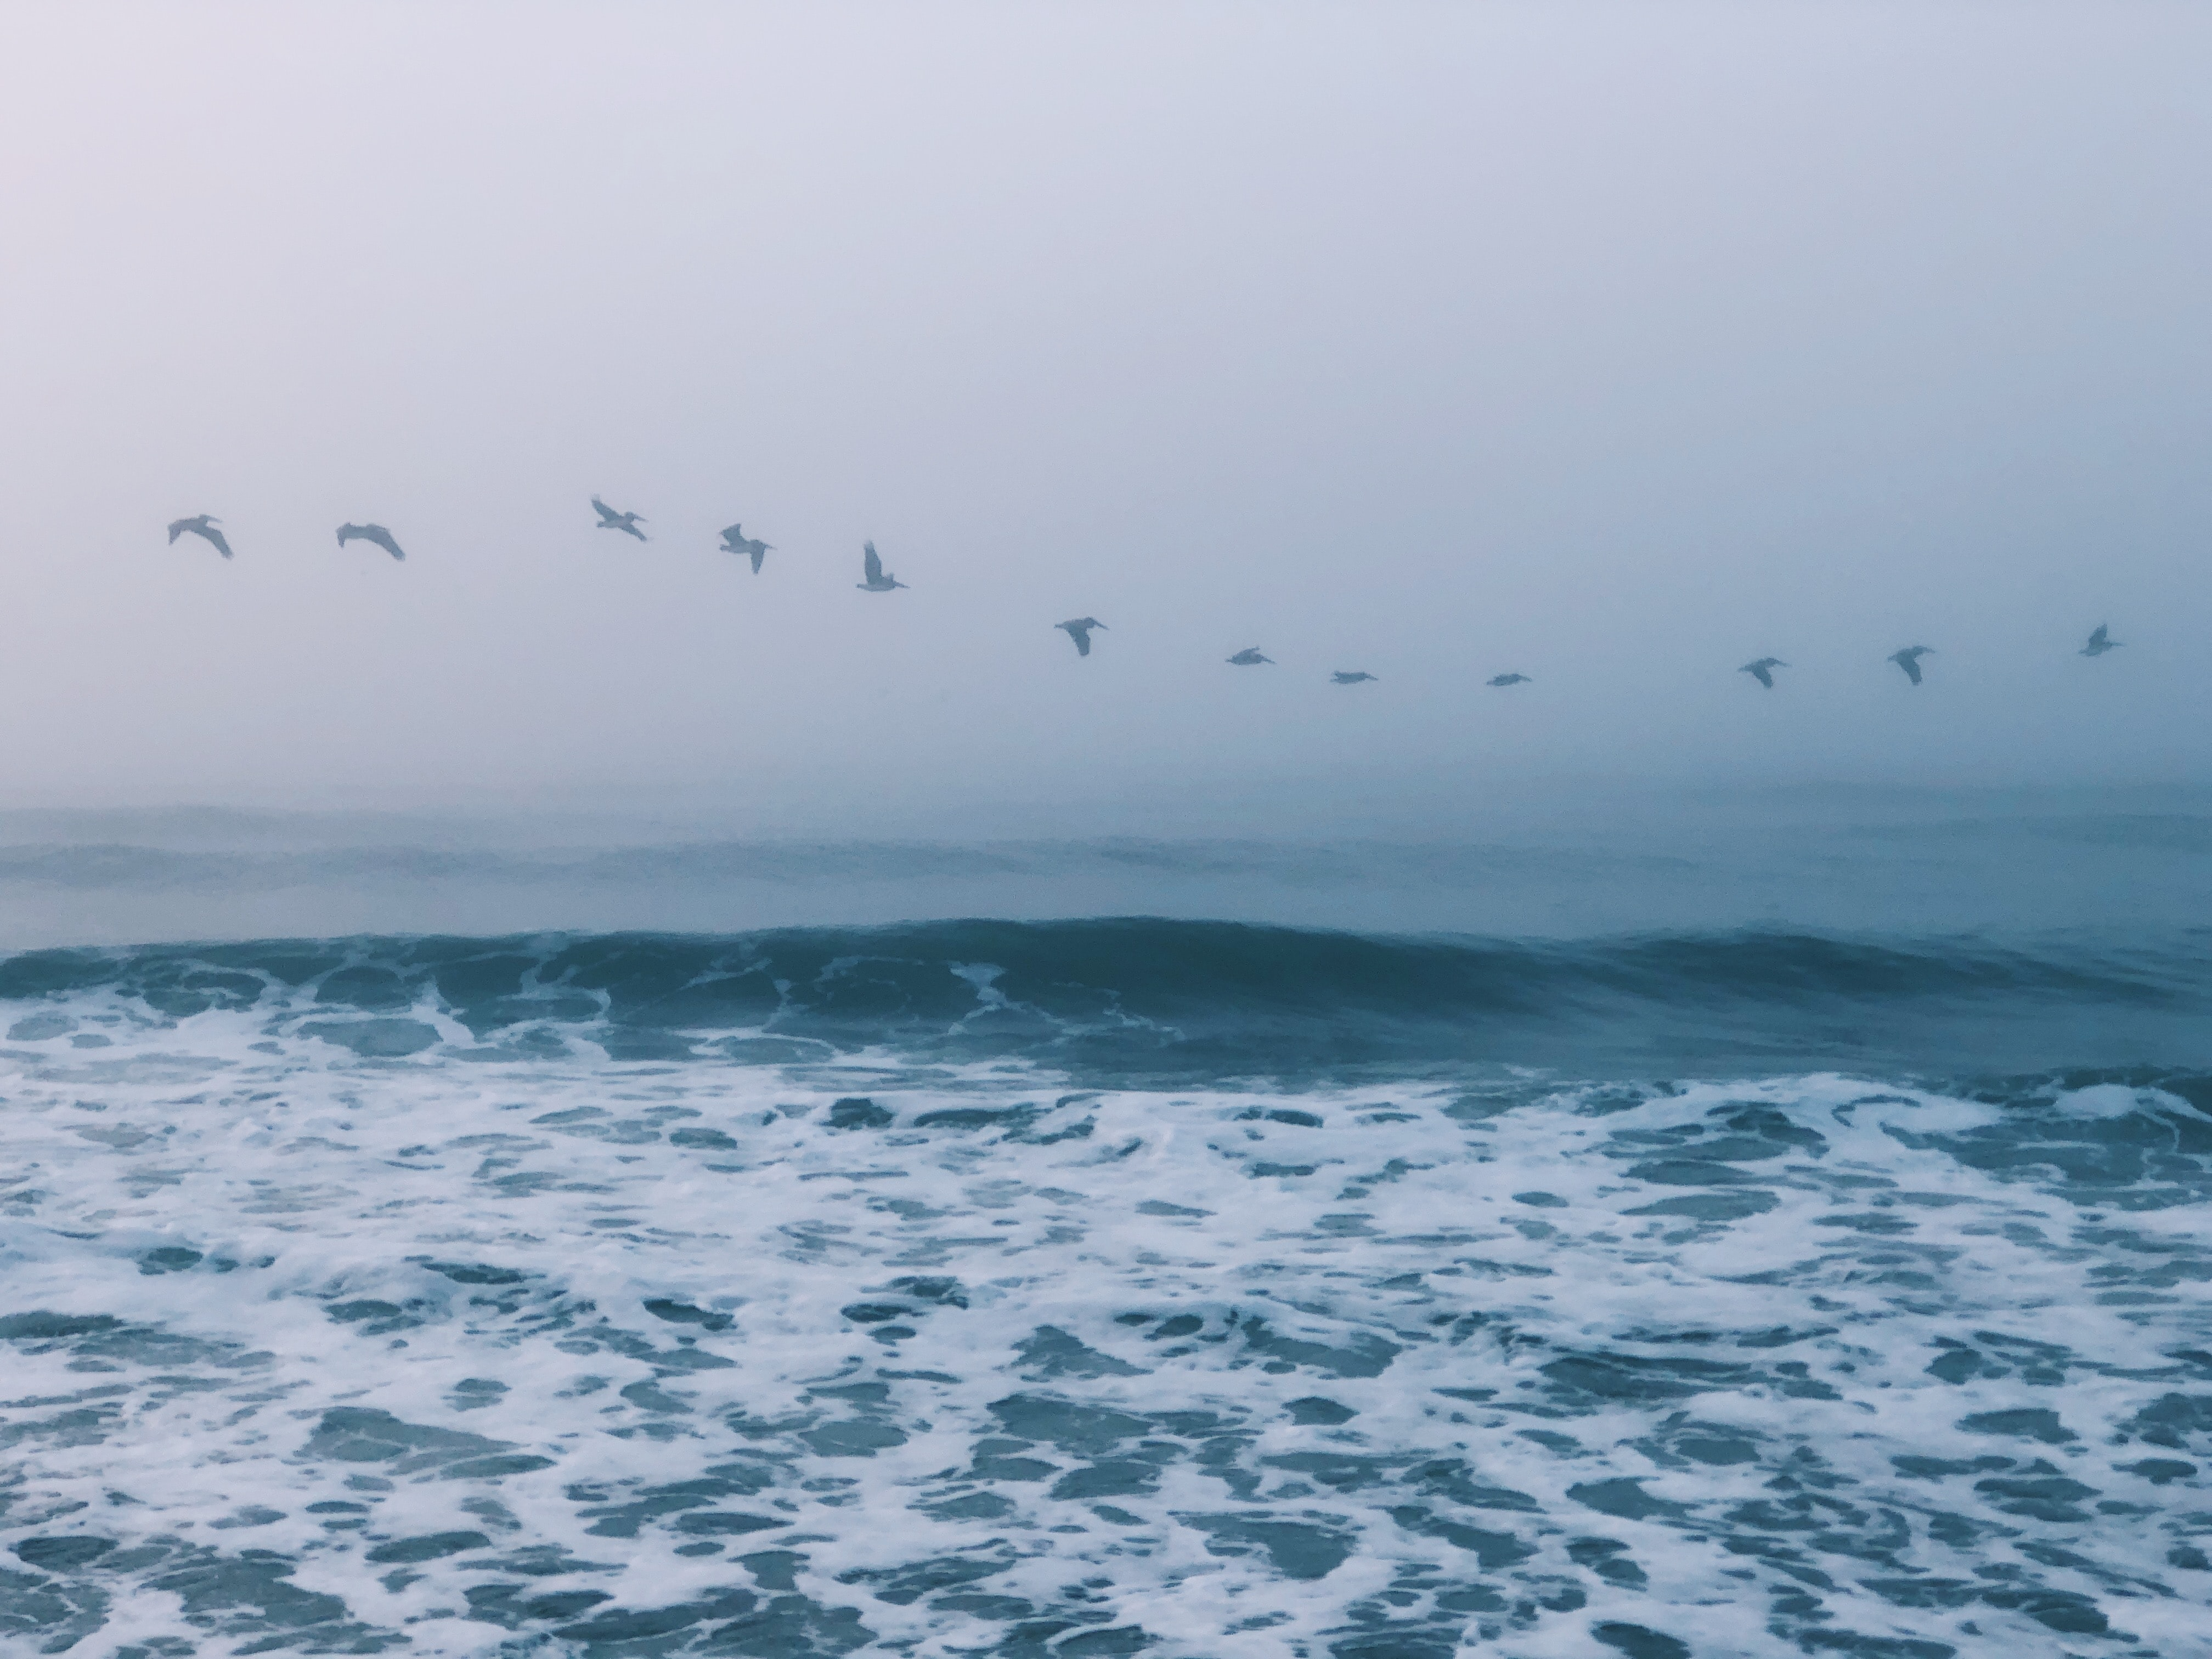 flock of birds above ocean at daytime